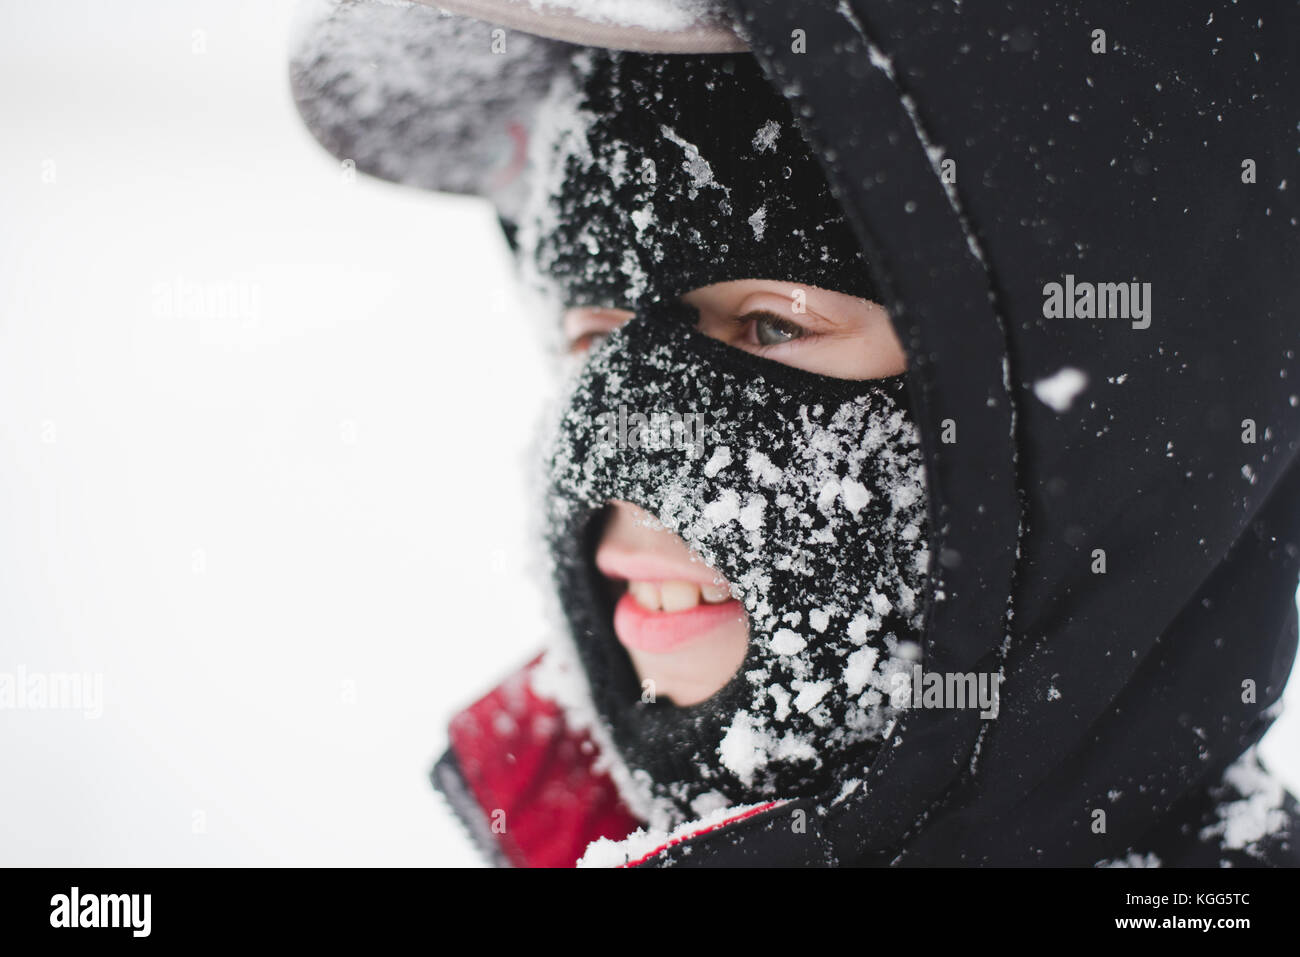 Child wearing a ski mask covered in snow - Stock Image